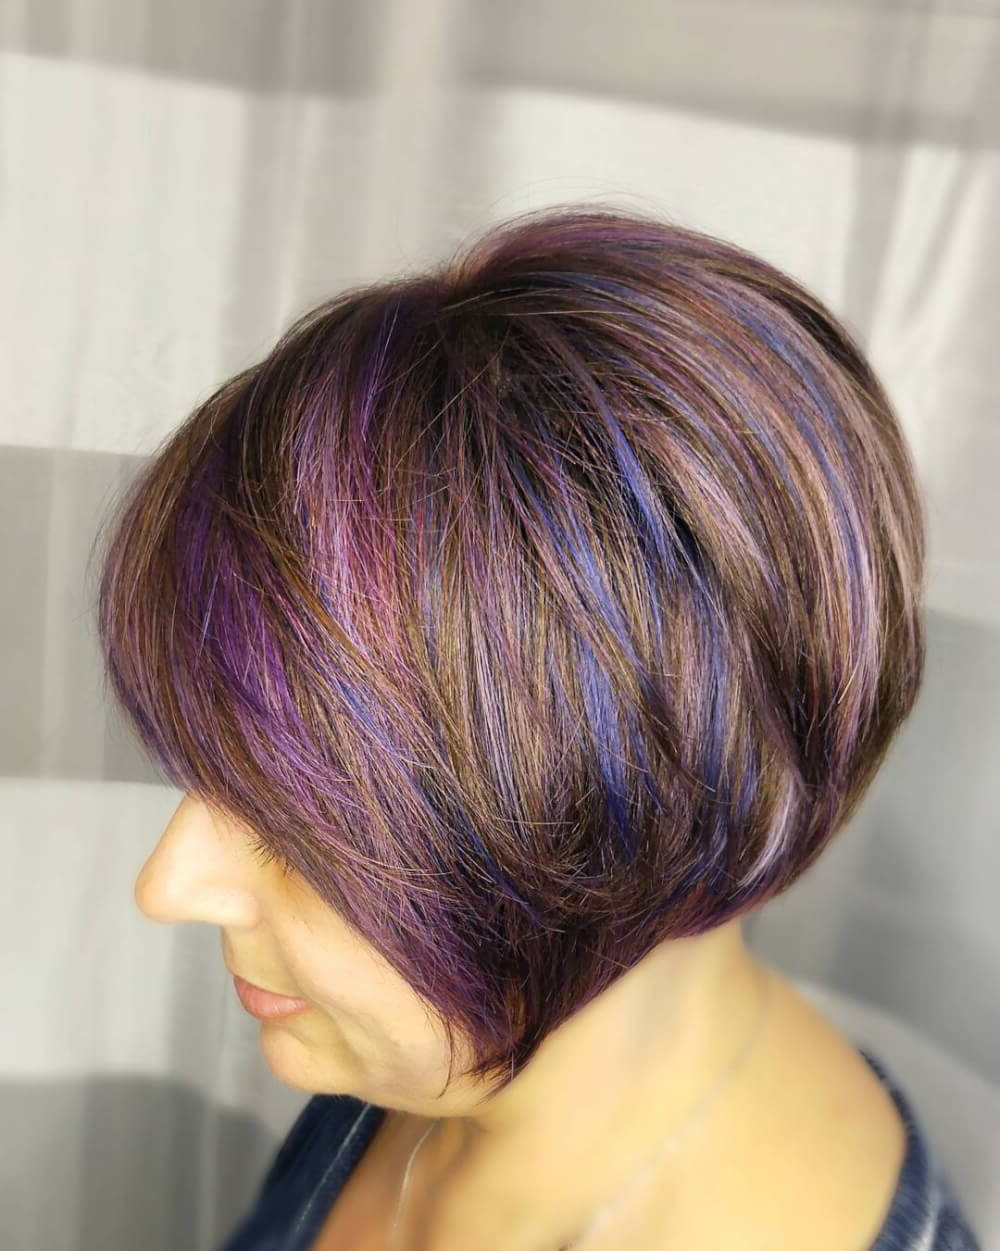 39 Classiest Short Hairstyles For Women Over 50 Of 2018 Inside Short Hair For Over 50S (View 18 of 25)